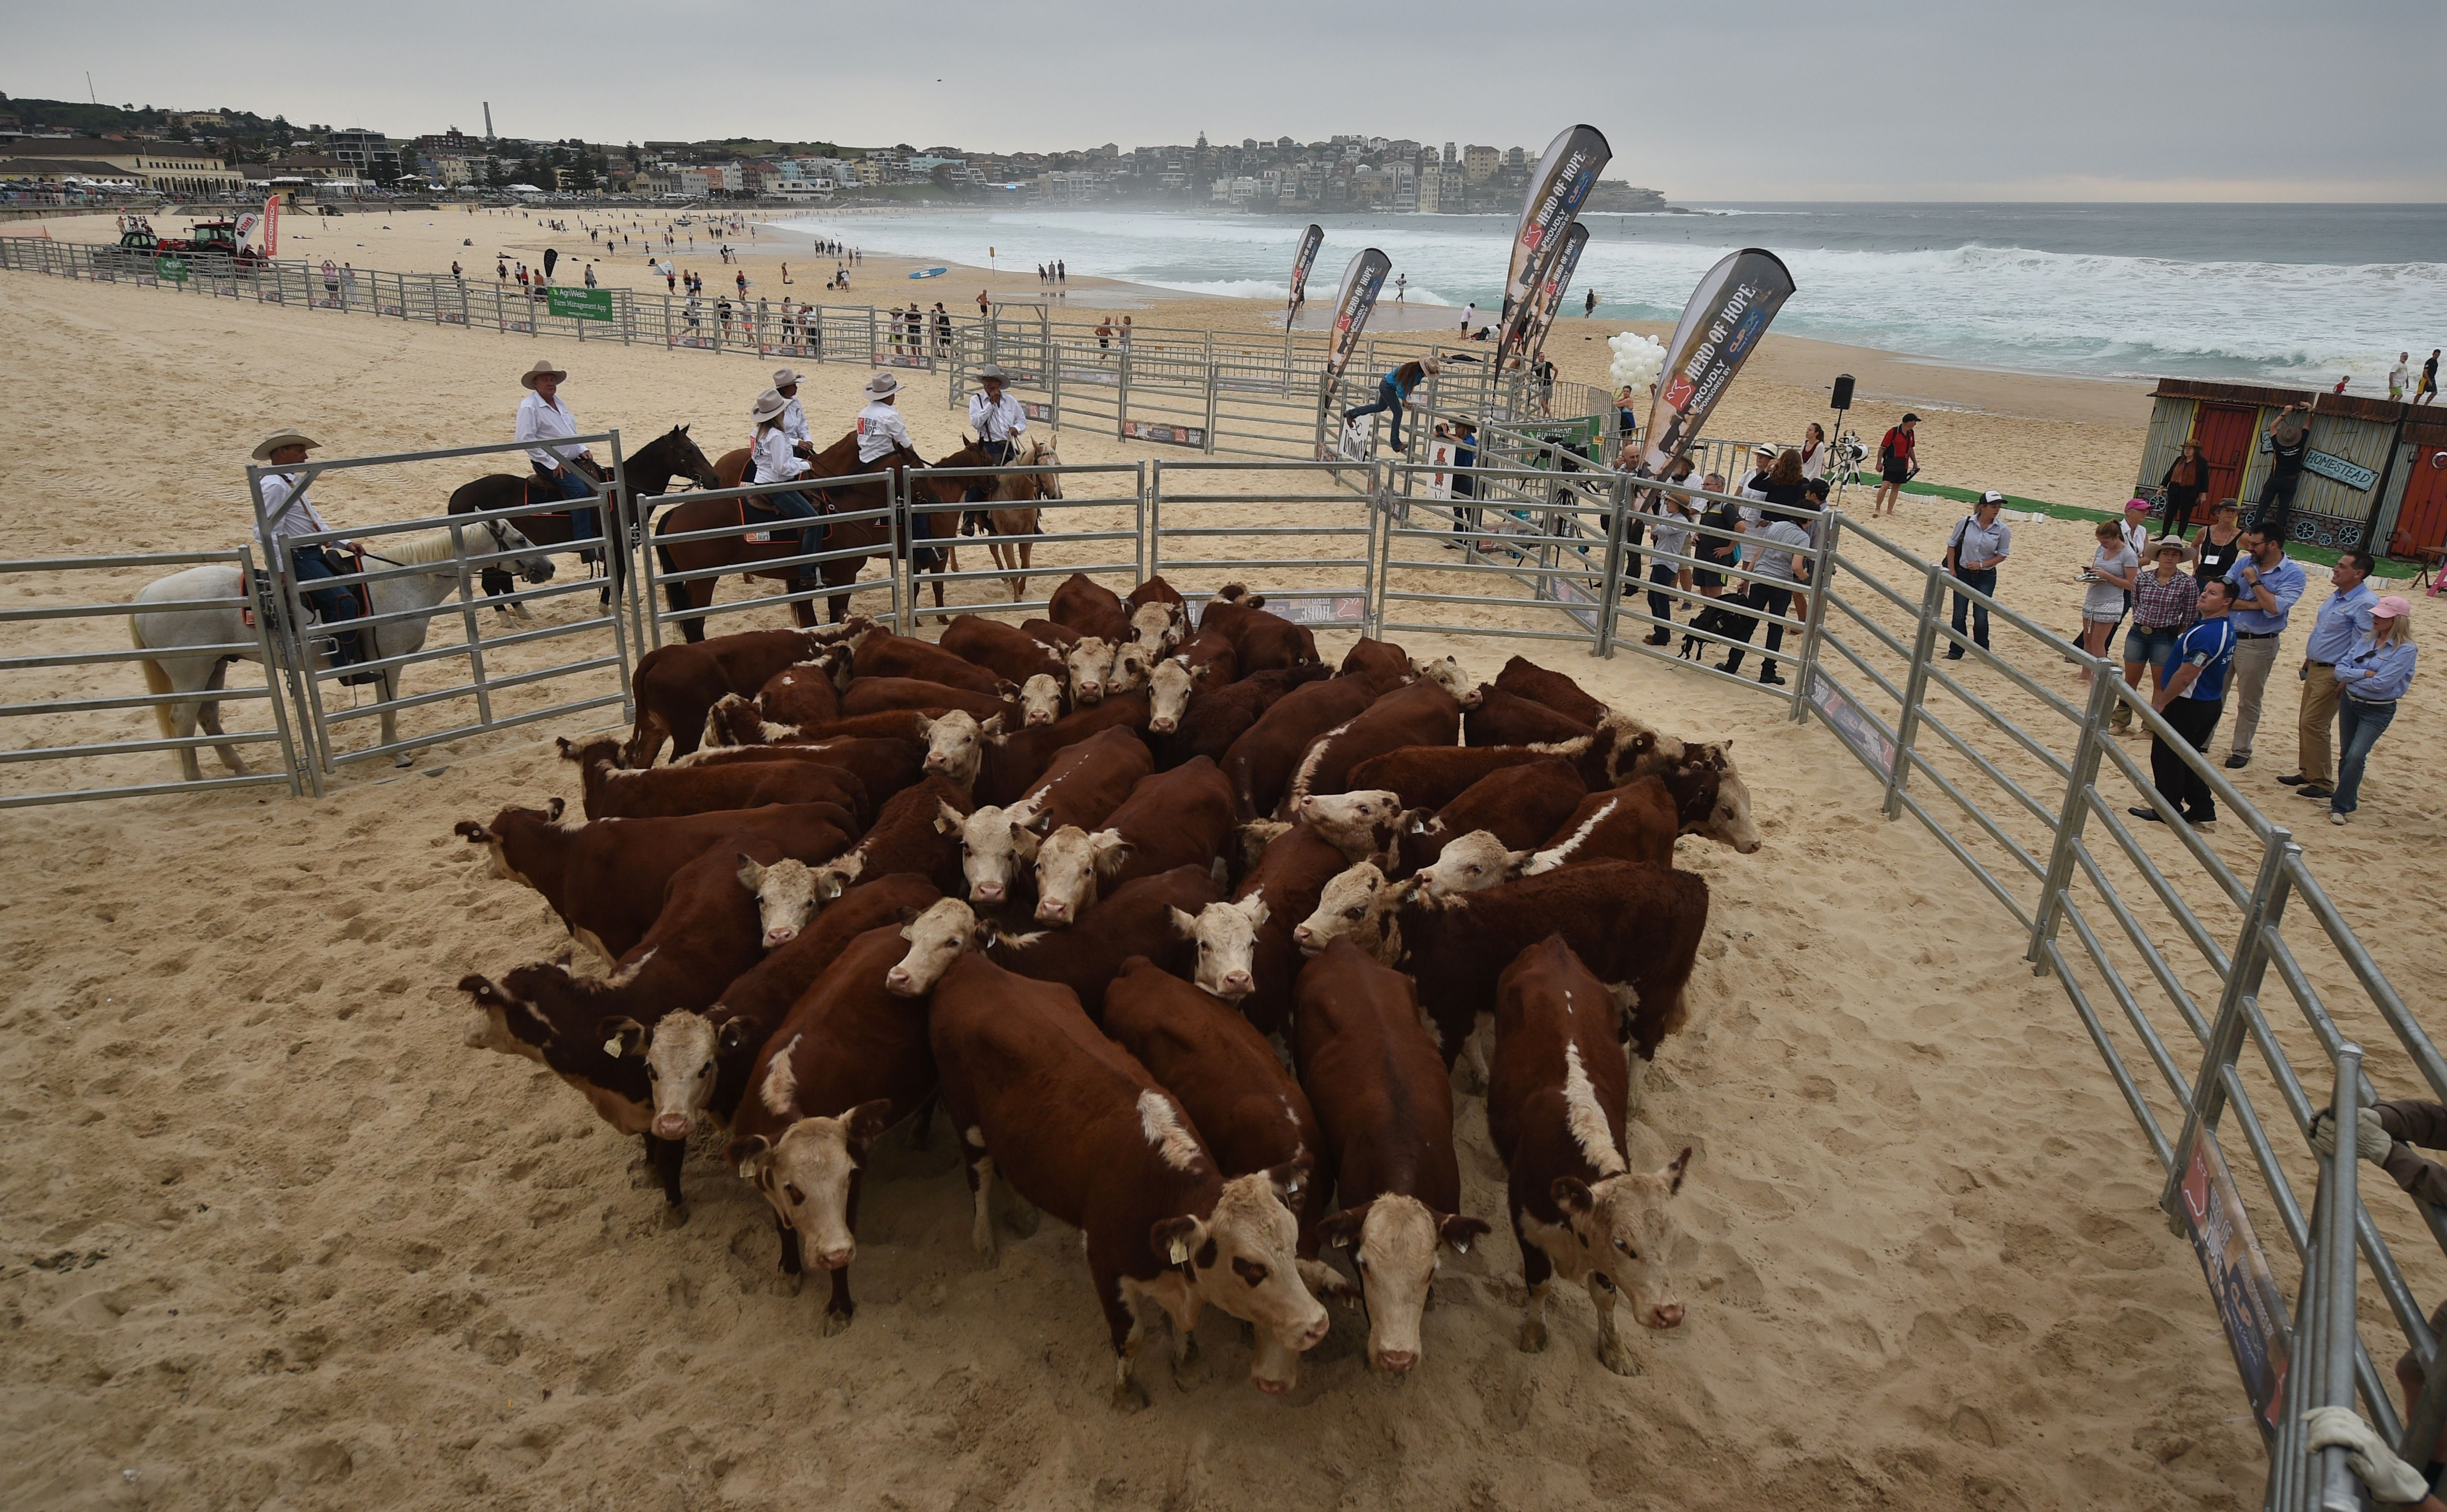 Cows gather together after being released from a cattle truck onto Bondi